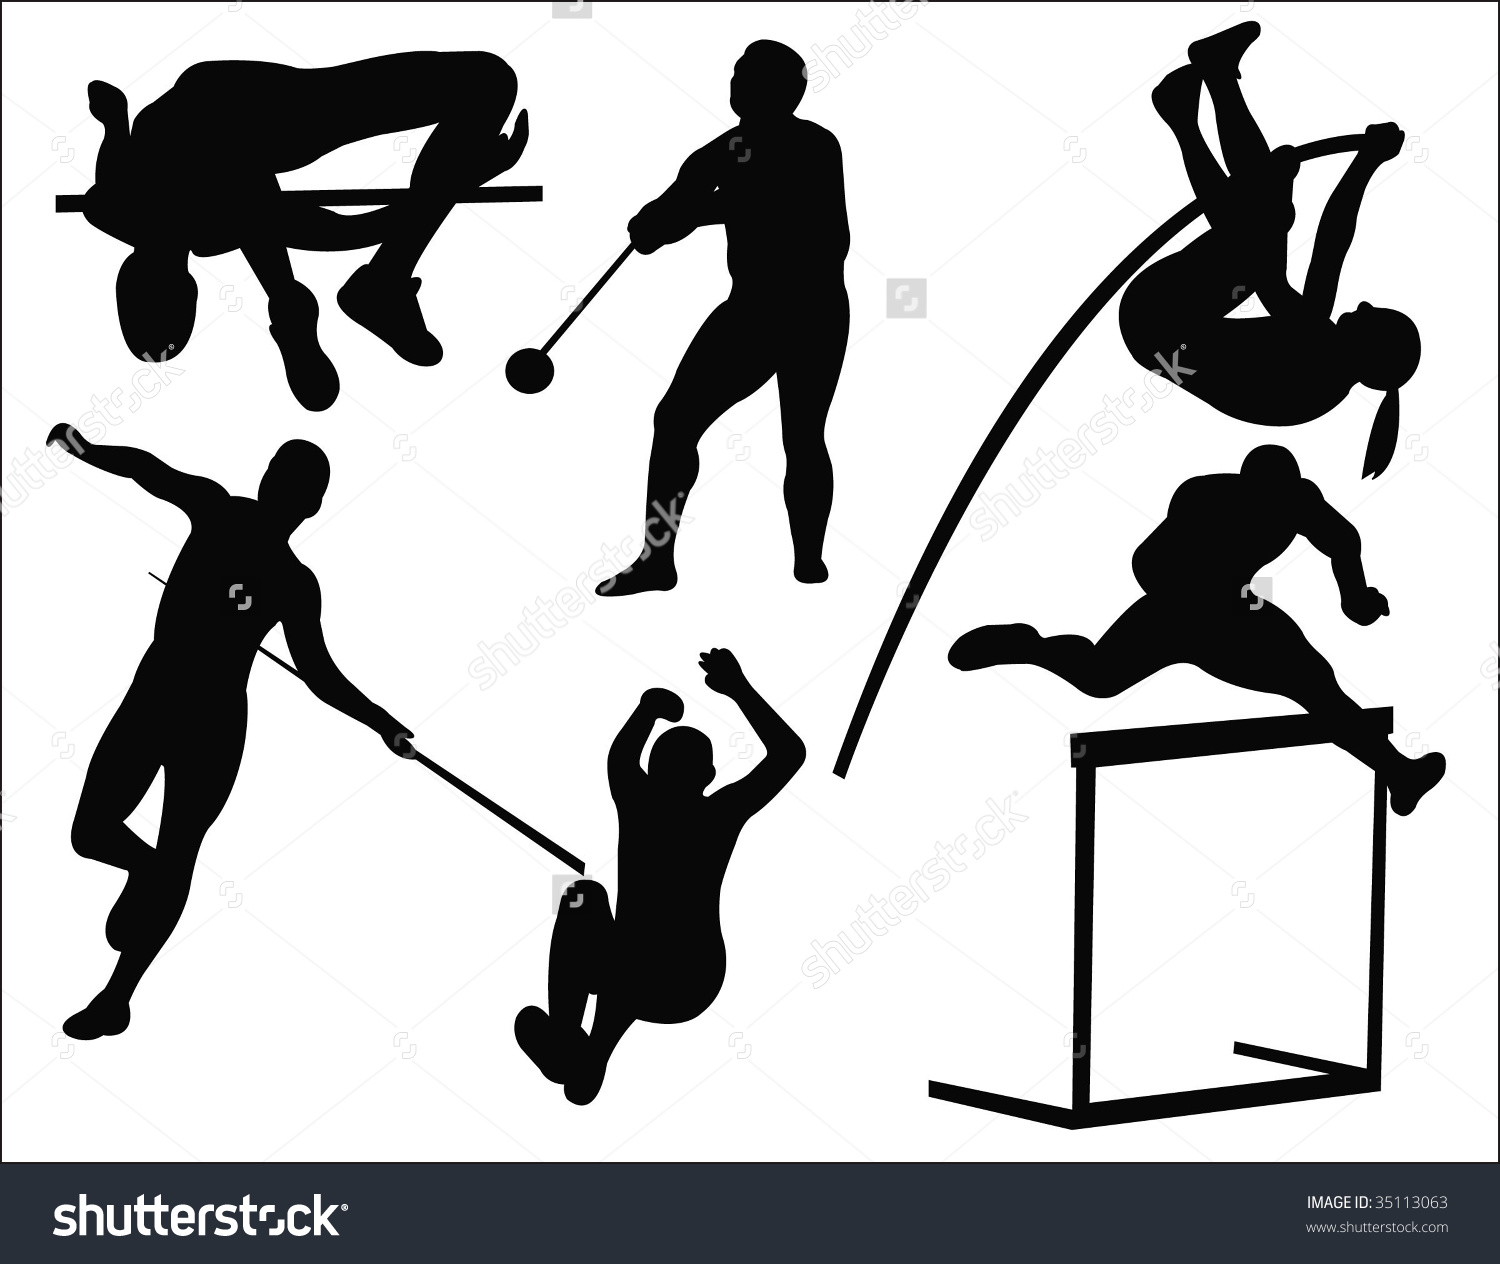 Athletics clipart black and white.